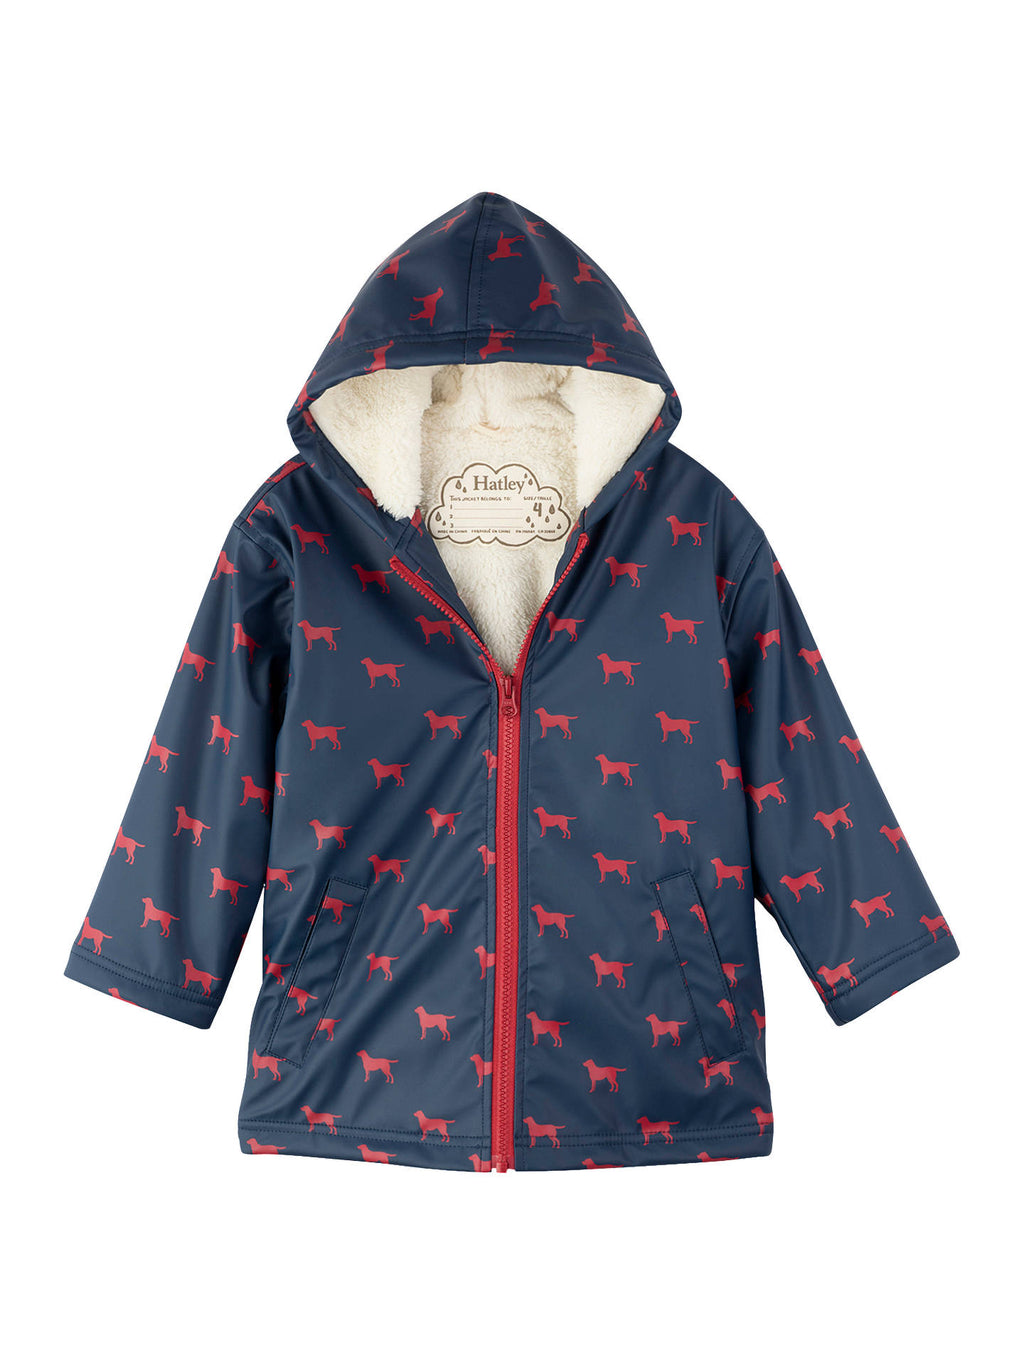 AW18 Hatley Boys Navy & Red Labs Raincoat